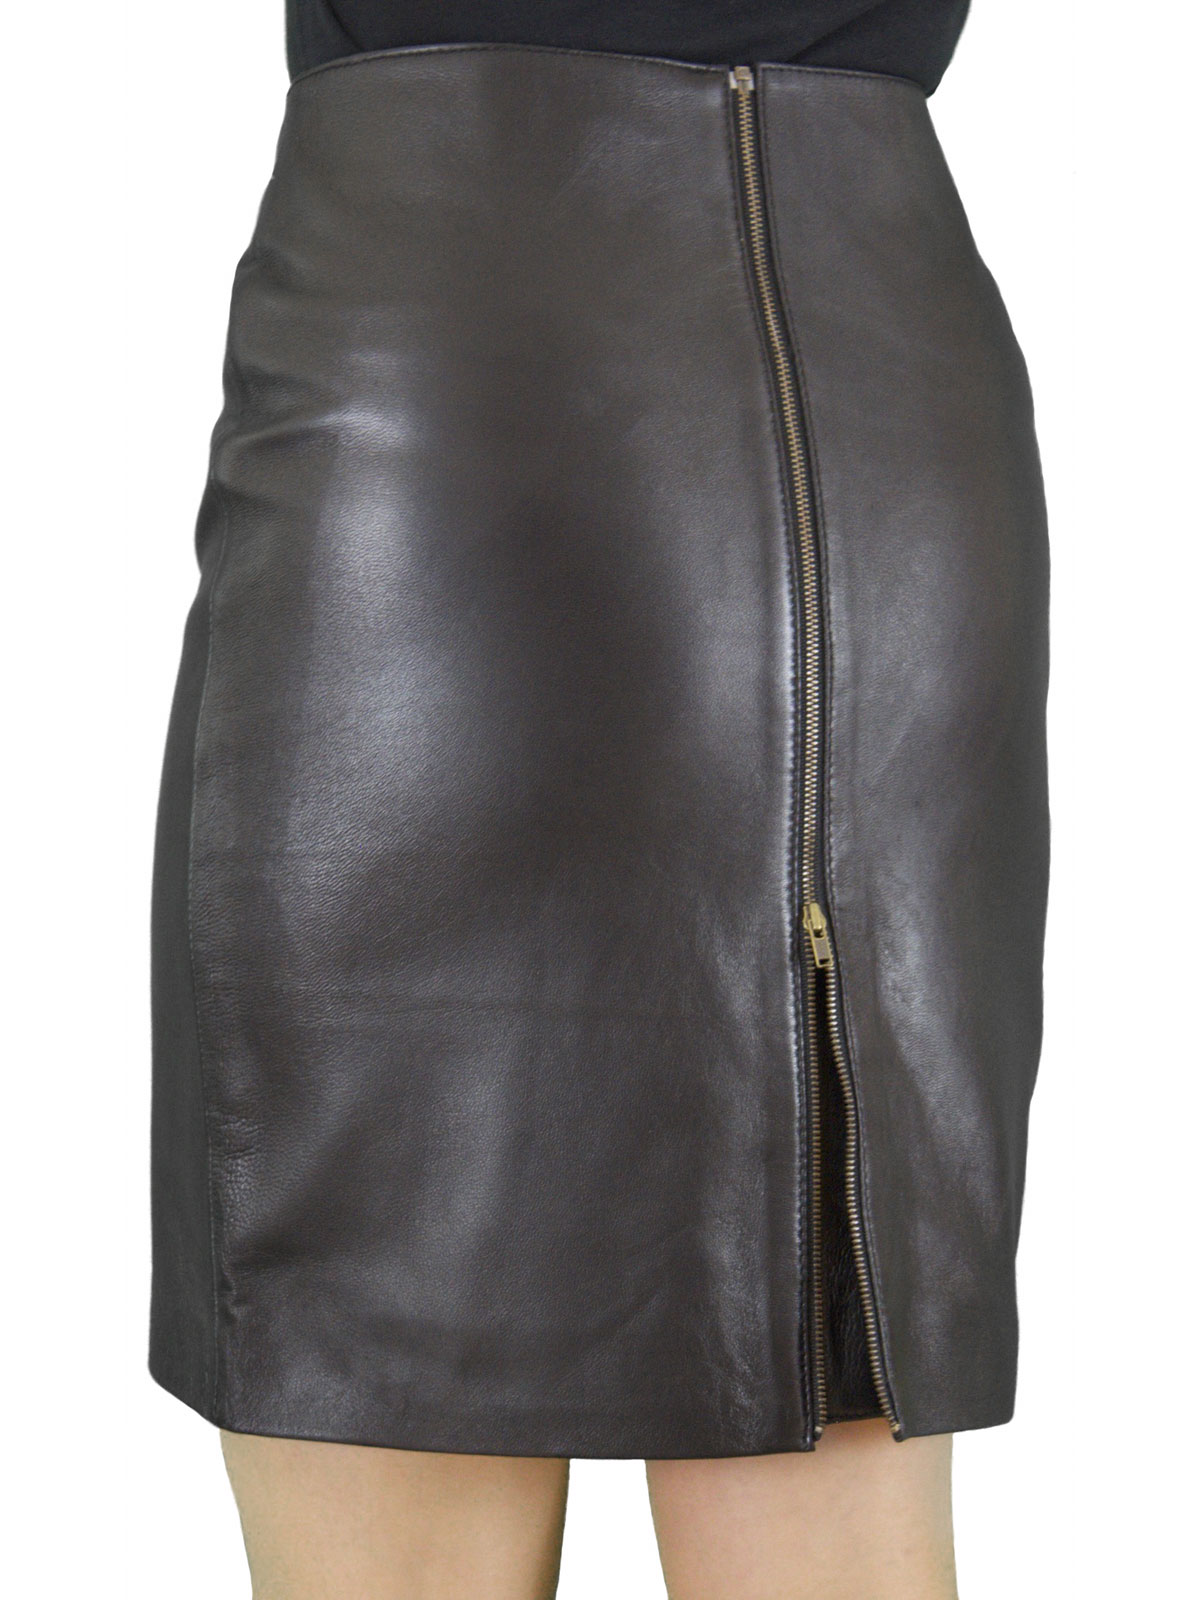 Soft Leather Pencil Skirt, full rear zip, 19in length - Tout Ensemble